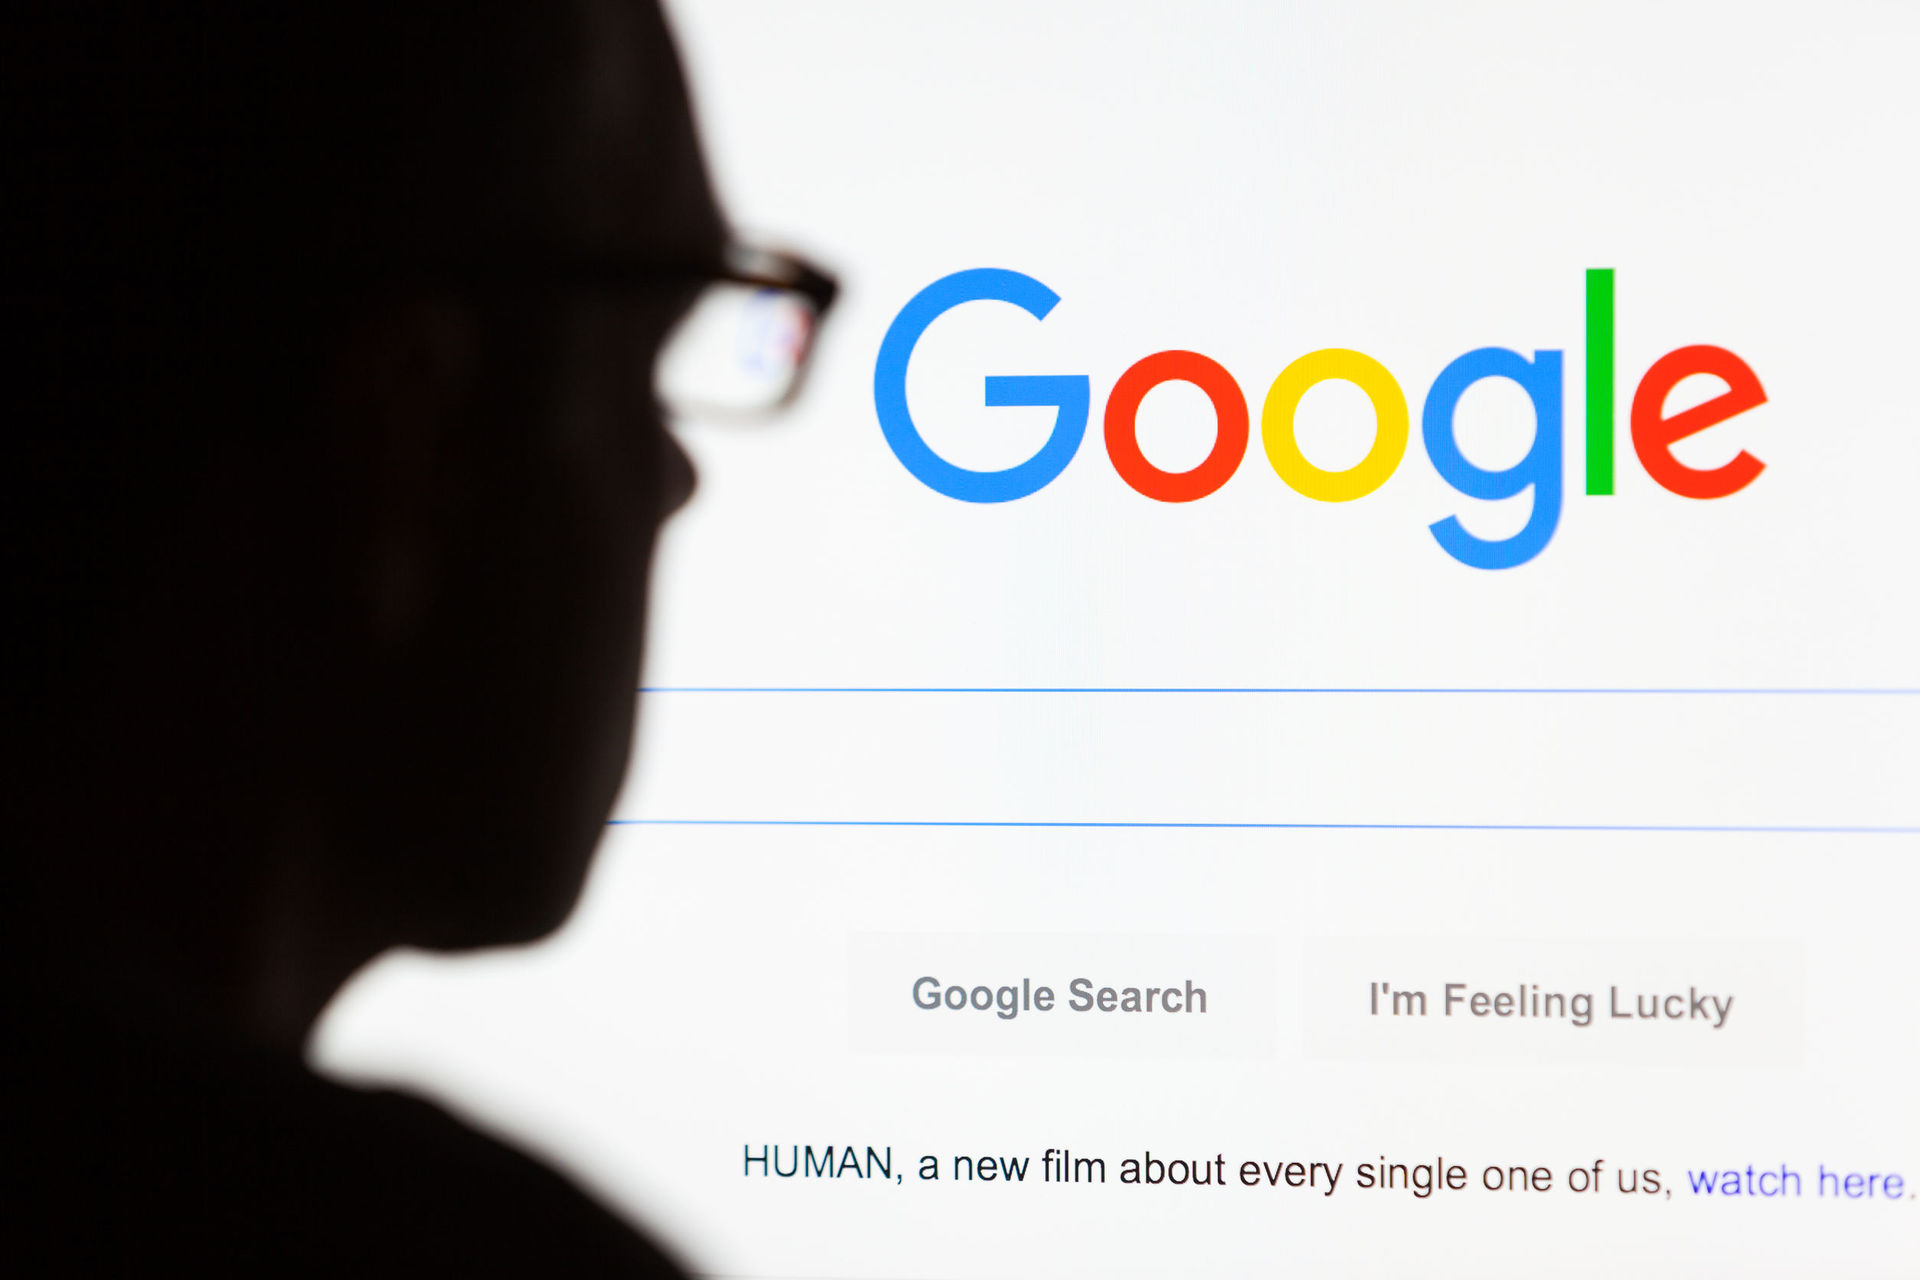 Google says only talk about work at work - and definitely no politics